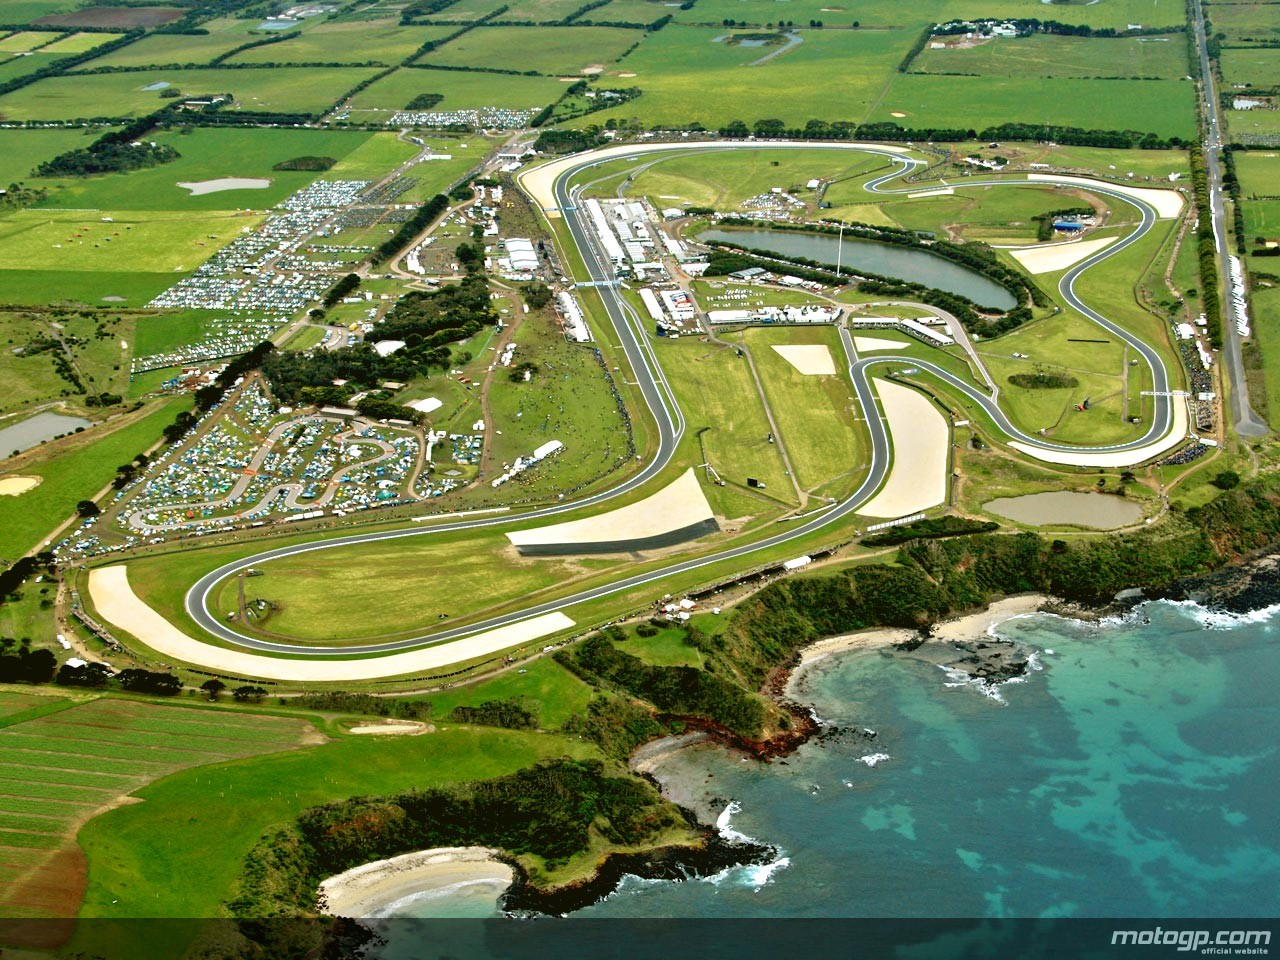 https://s1.cdn.autoevolution.com/images/news/world-superbike-extends-partnership-with-the-phillip-island-circuit-55869_1.jpg